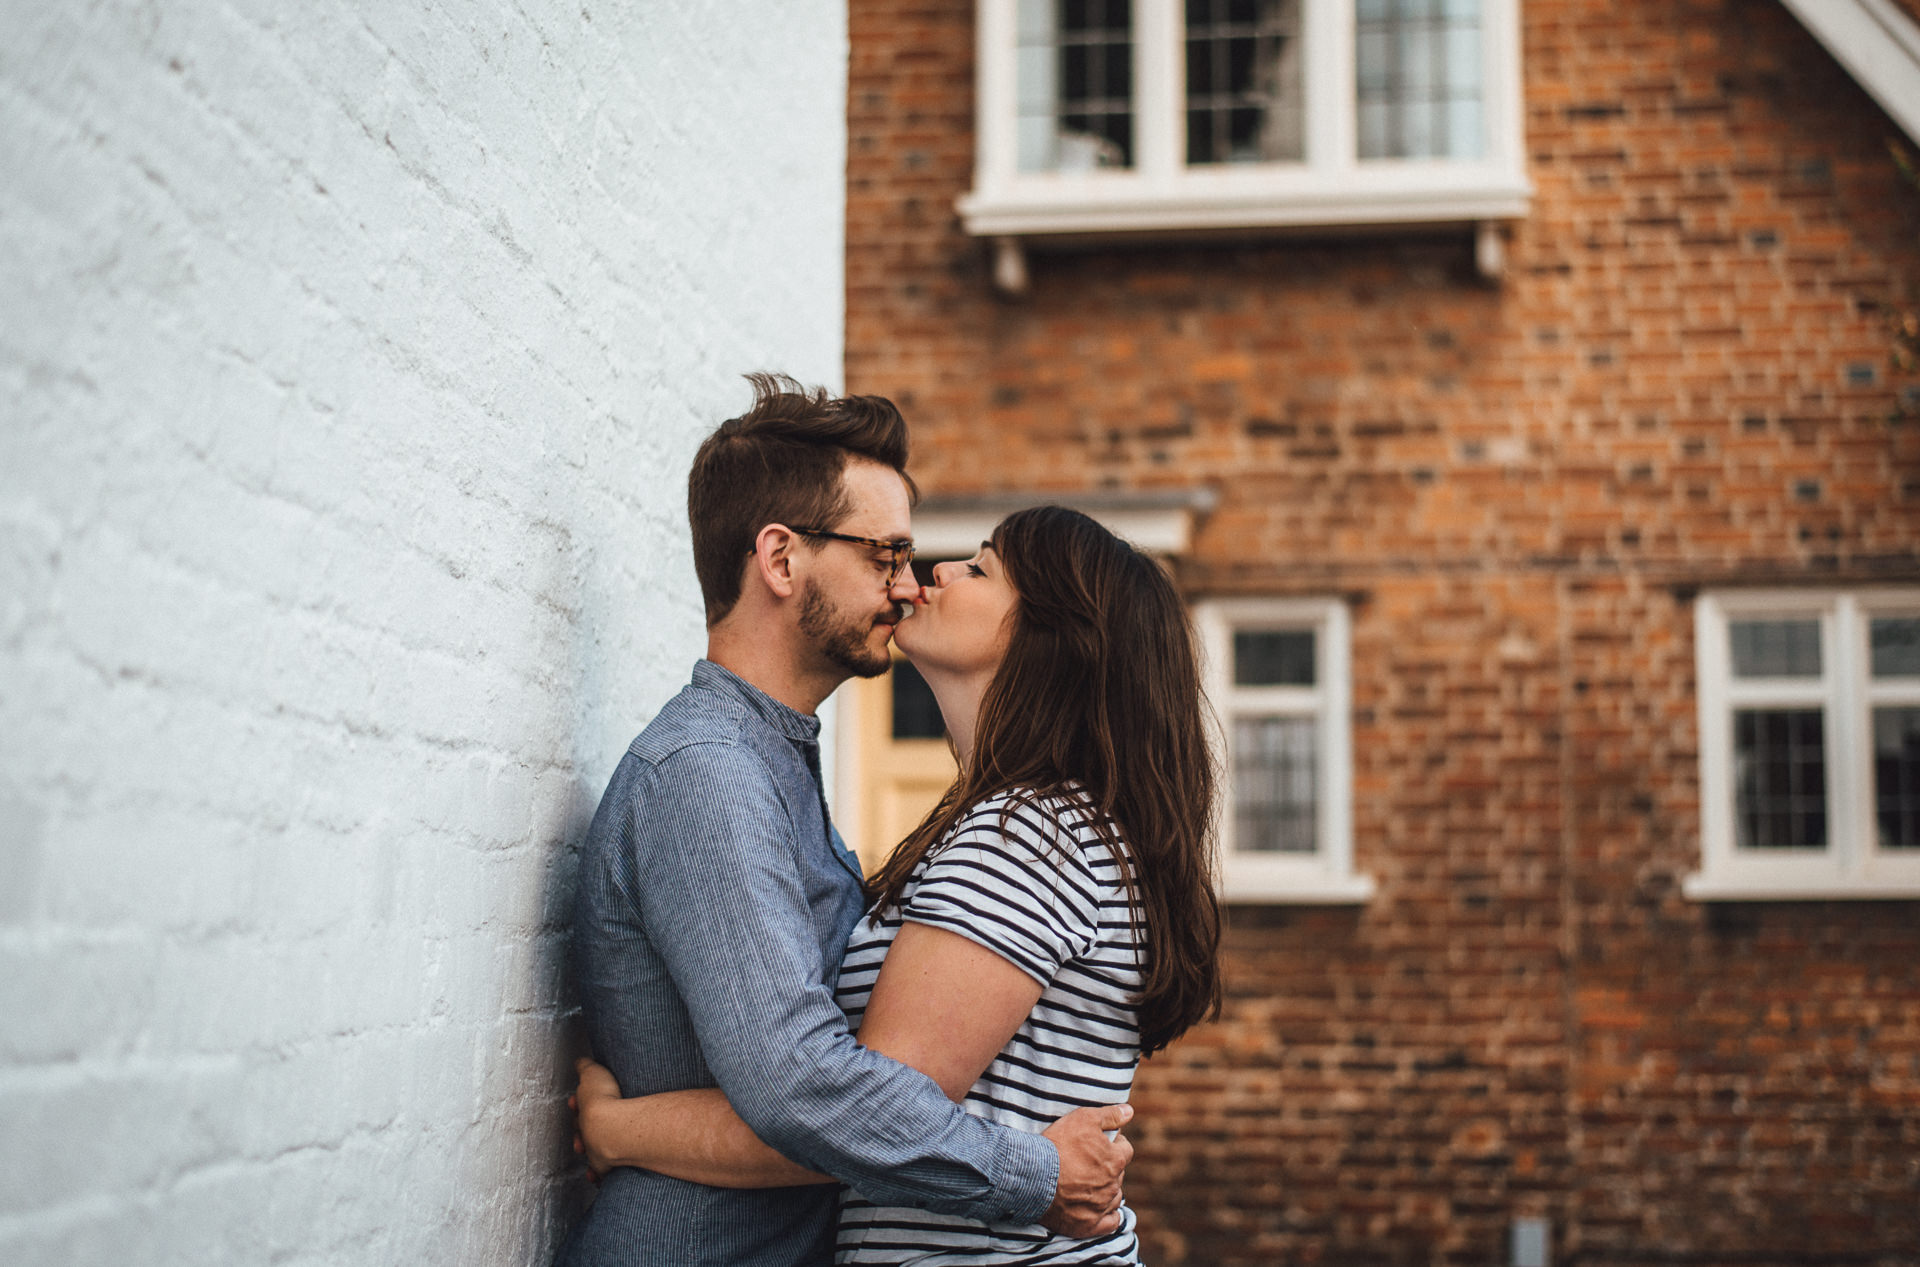 Woman kissing a her partner on the nose. Quirky london engagement shoot ideas